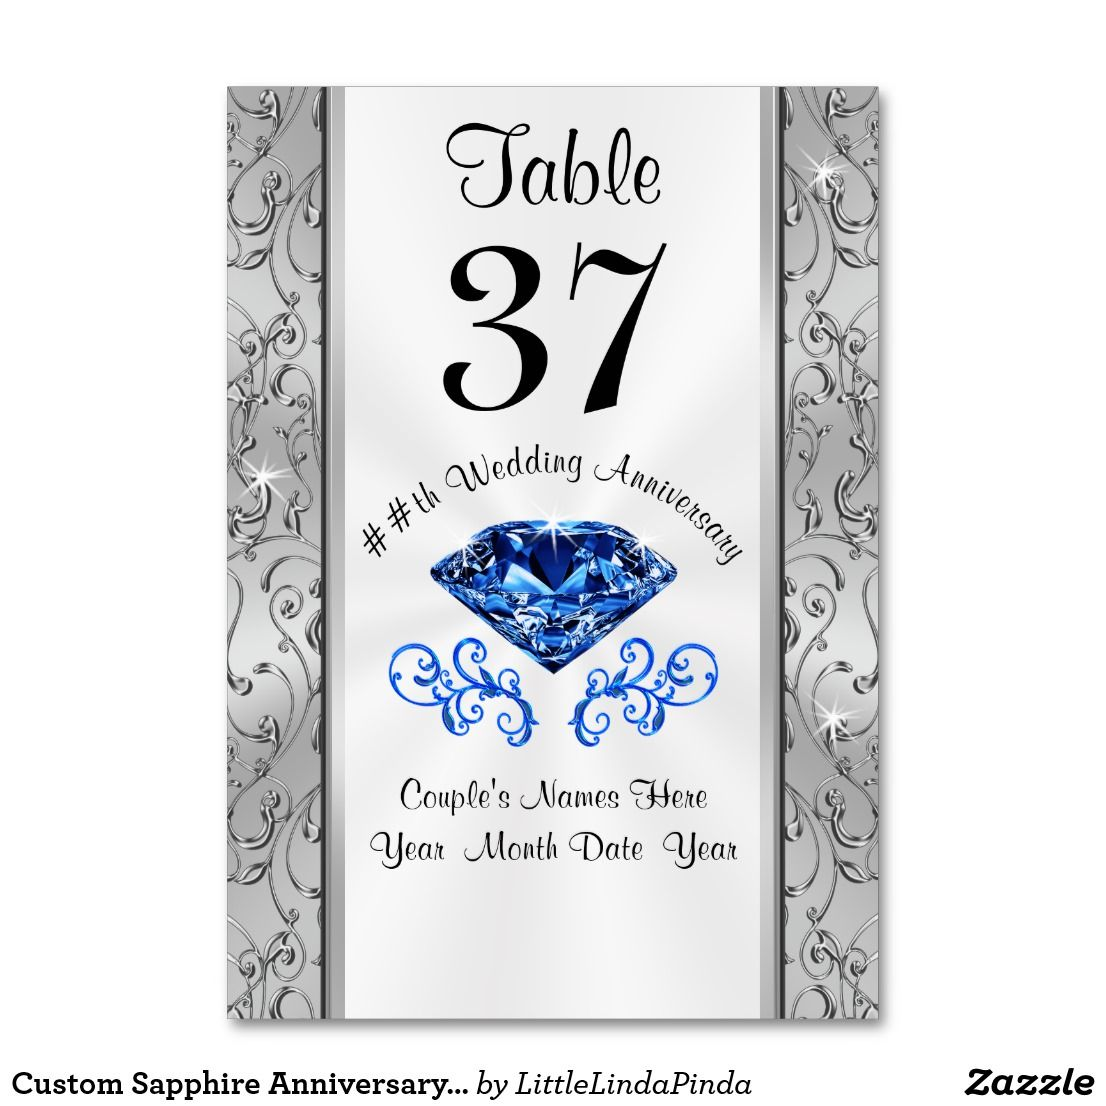 Custom Sapphire Anniversary Table Number Cards Zazzle